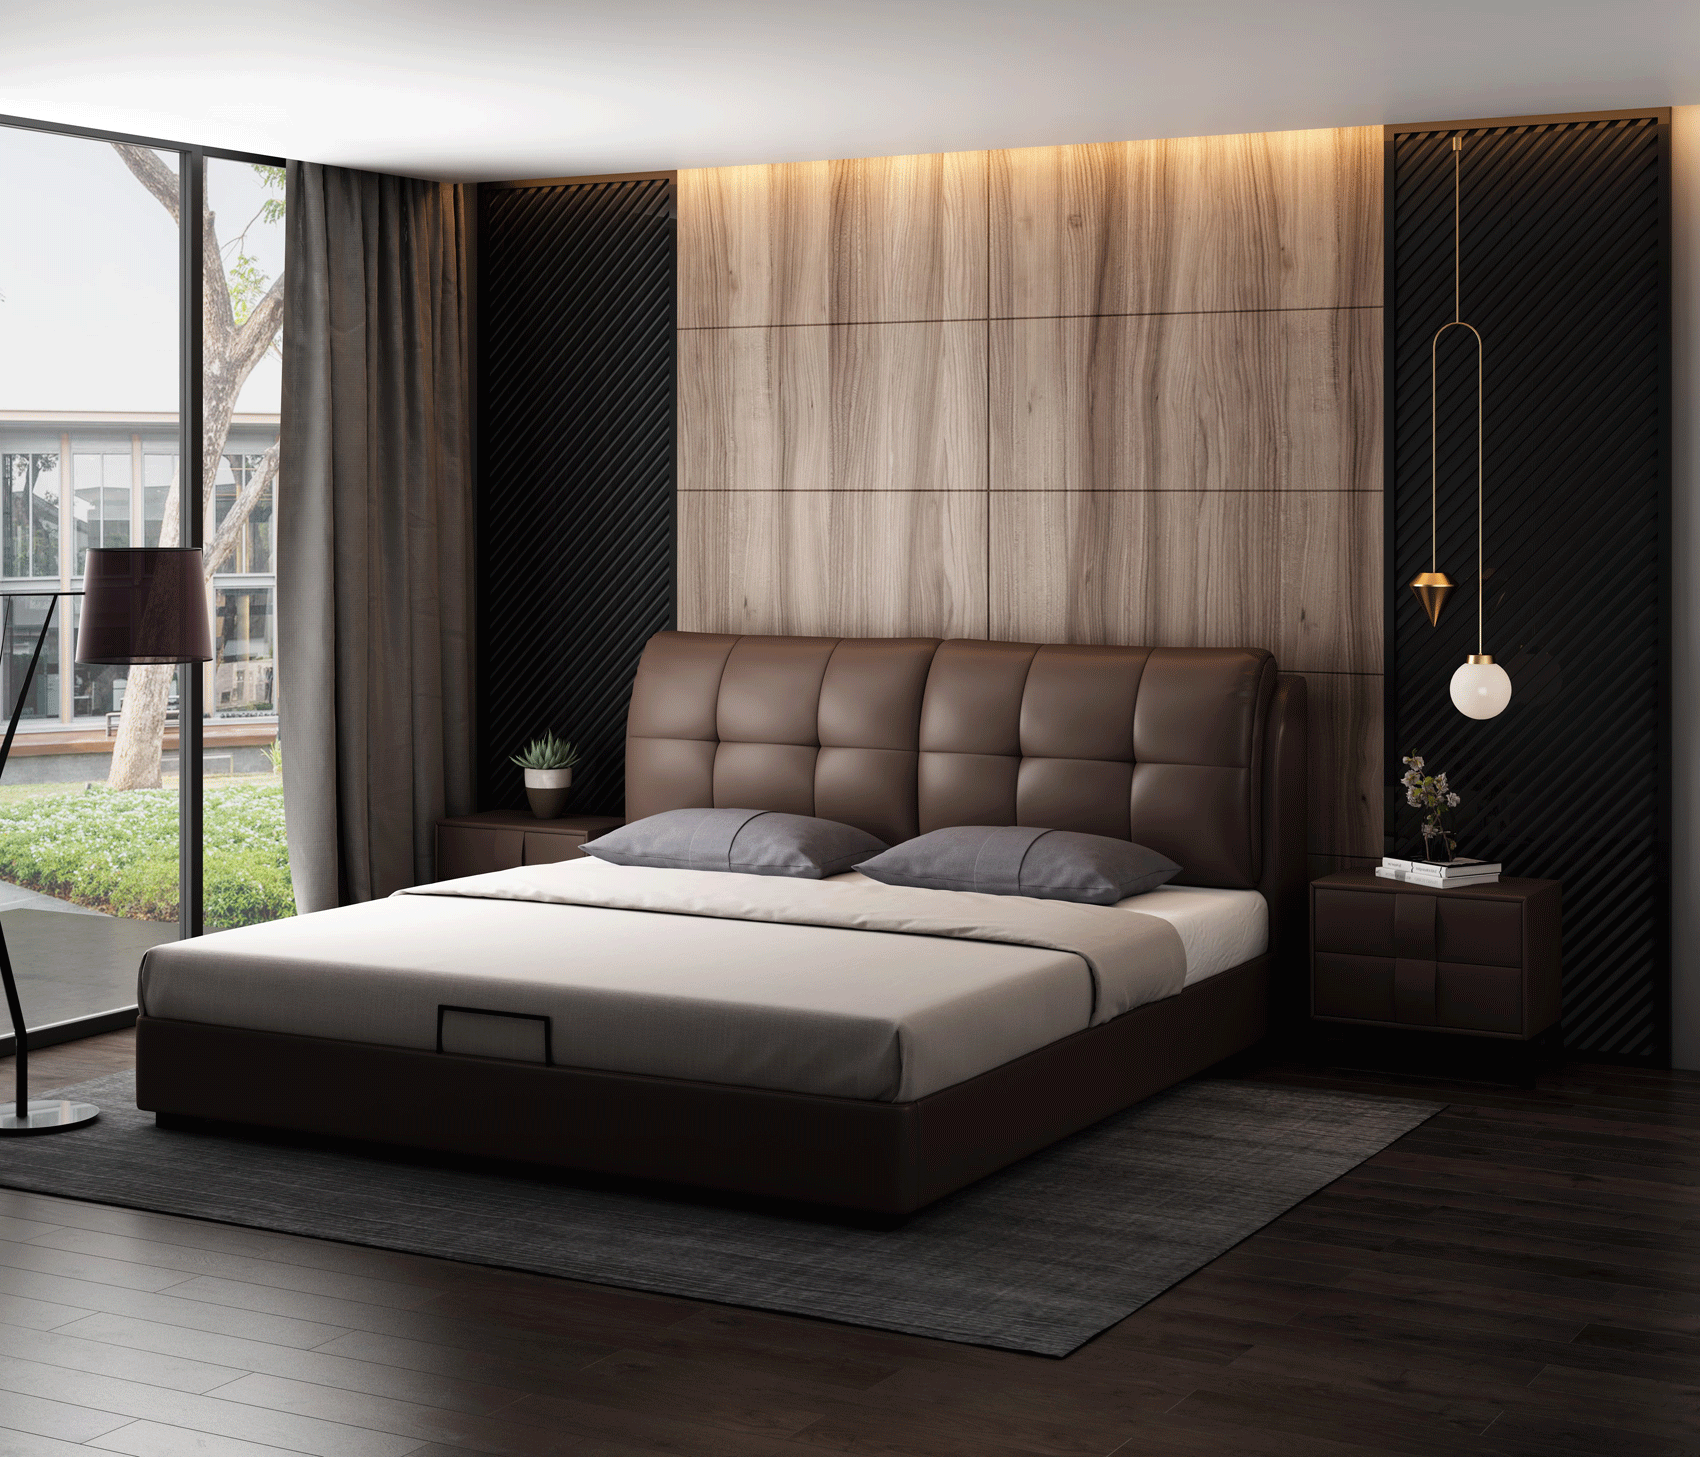 6099 Bed Swh Modern Beds Special Order Brands